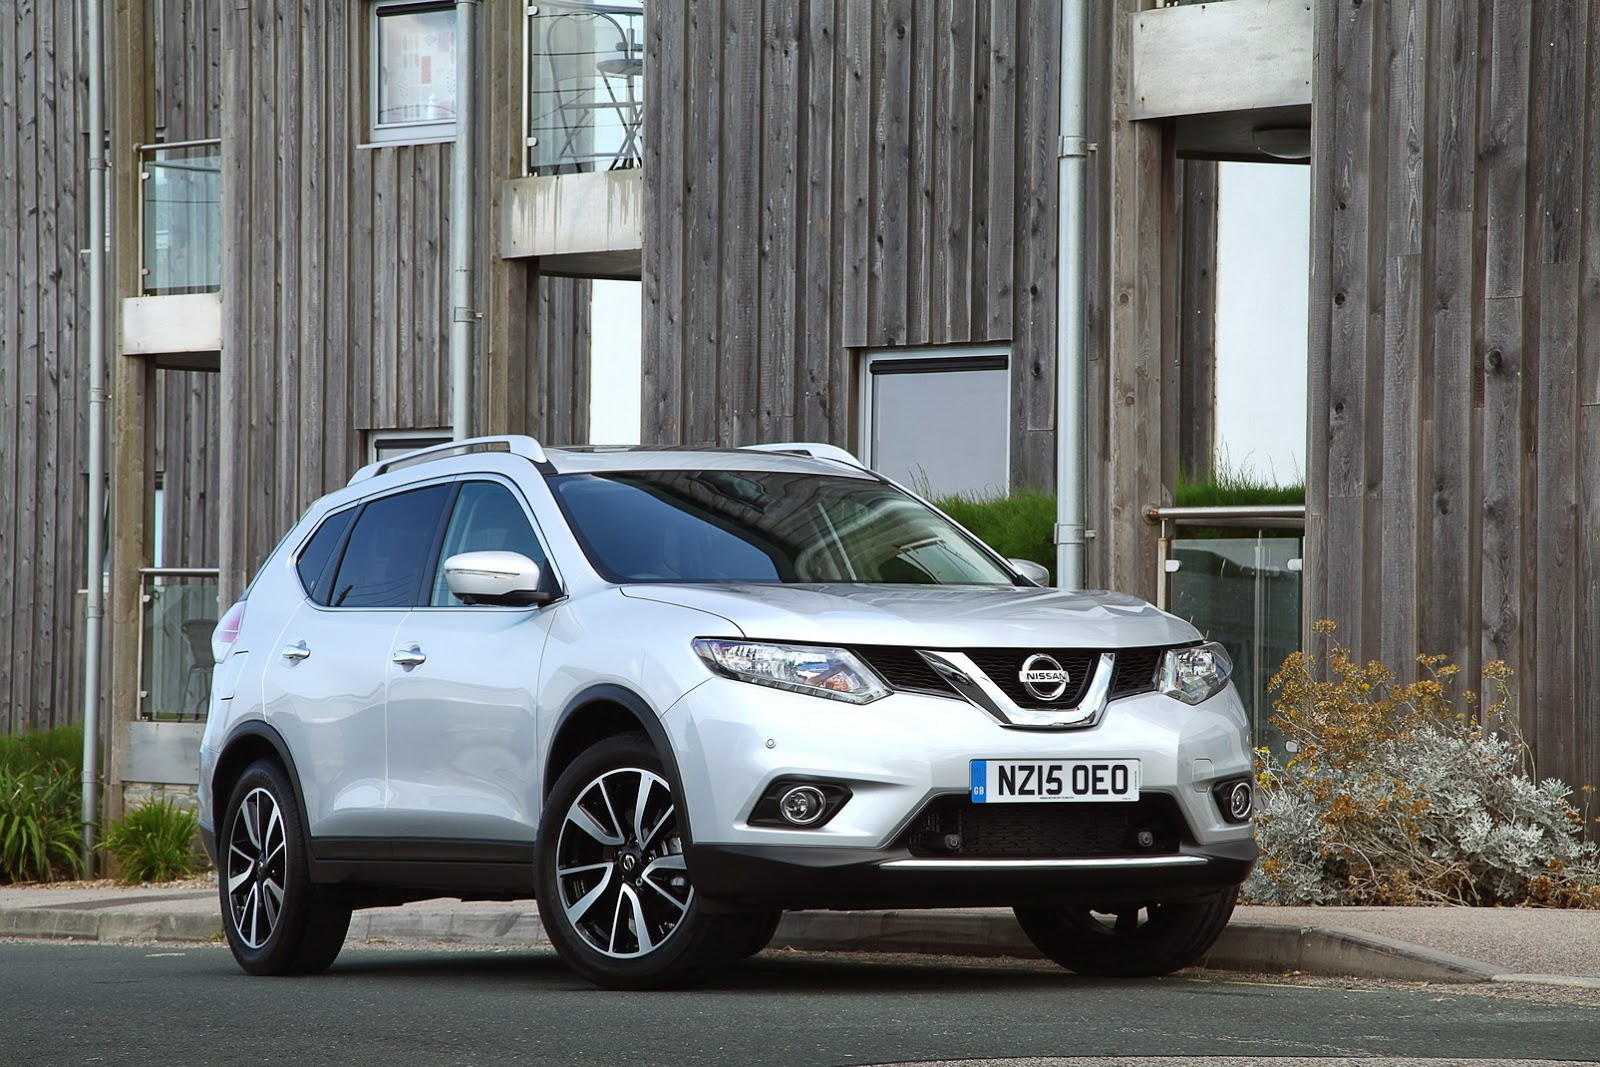 2017 nissan x trail gets 2 0 liter diesel in europe thanks to the koleos autoevolution. Black Bedroom Furniture Sets. Home Design Ideas